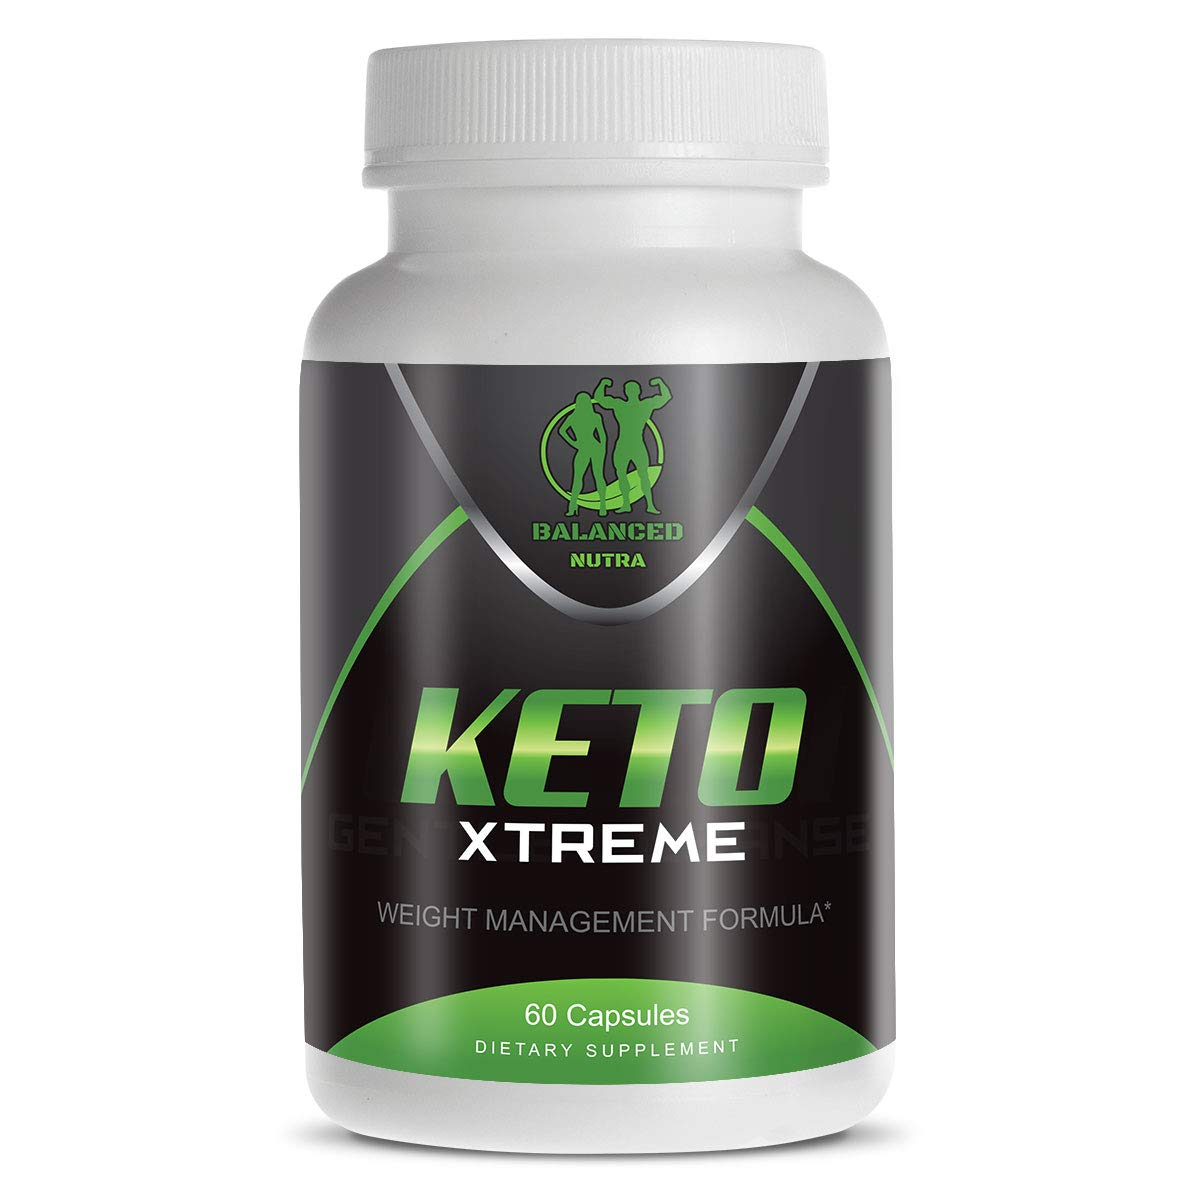 Keto Xtreme Keto Diet Pills - Keto Advanced Weight Loss - Burn Fat Instead of Carbs - Ketosis Supplement - 30 Day Supply #1 Selling Keto Pills (1 pack)